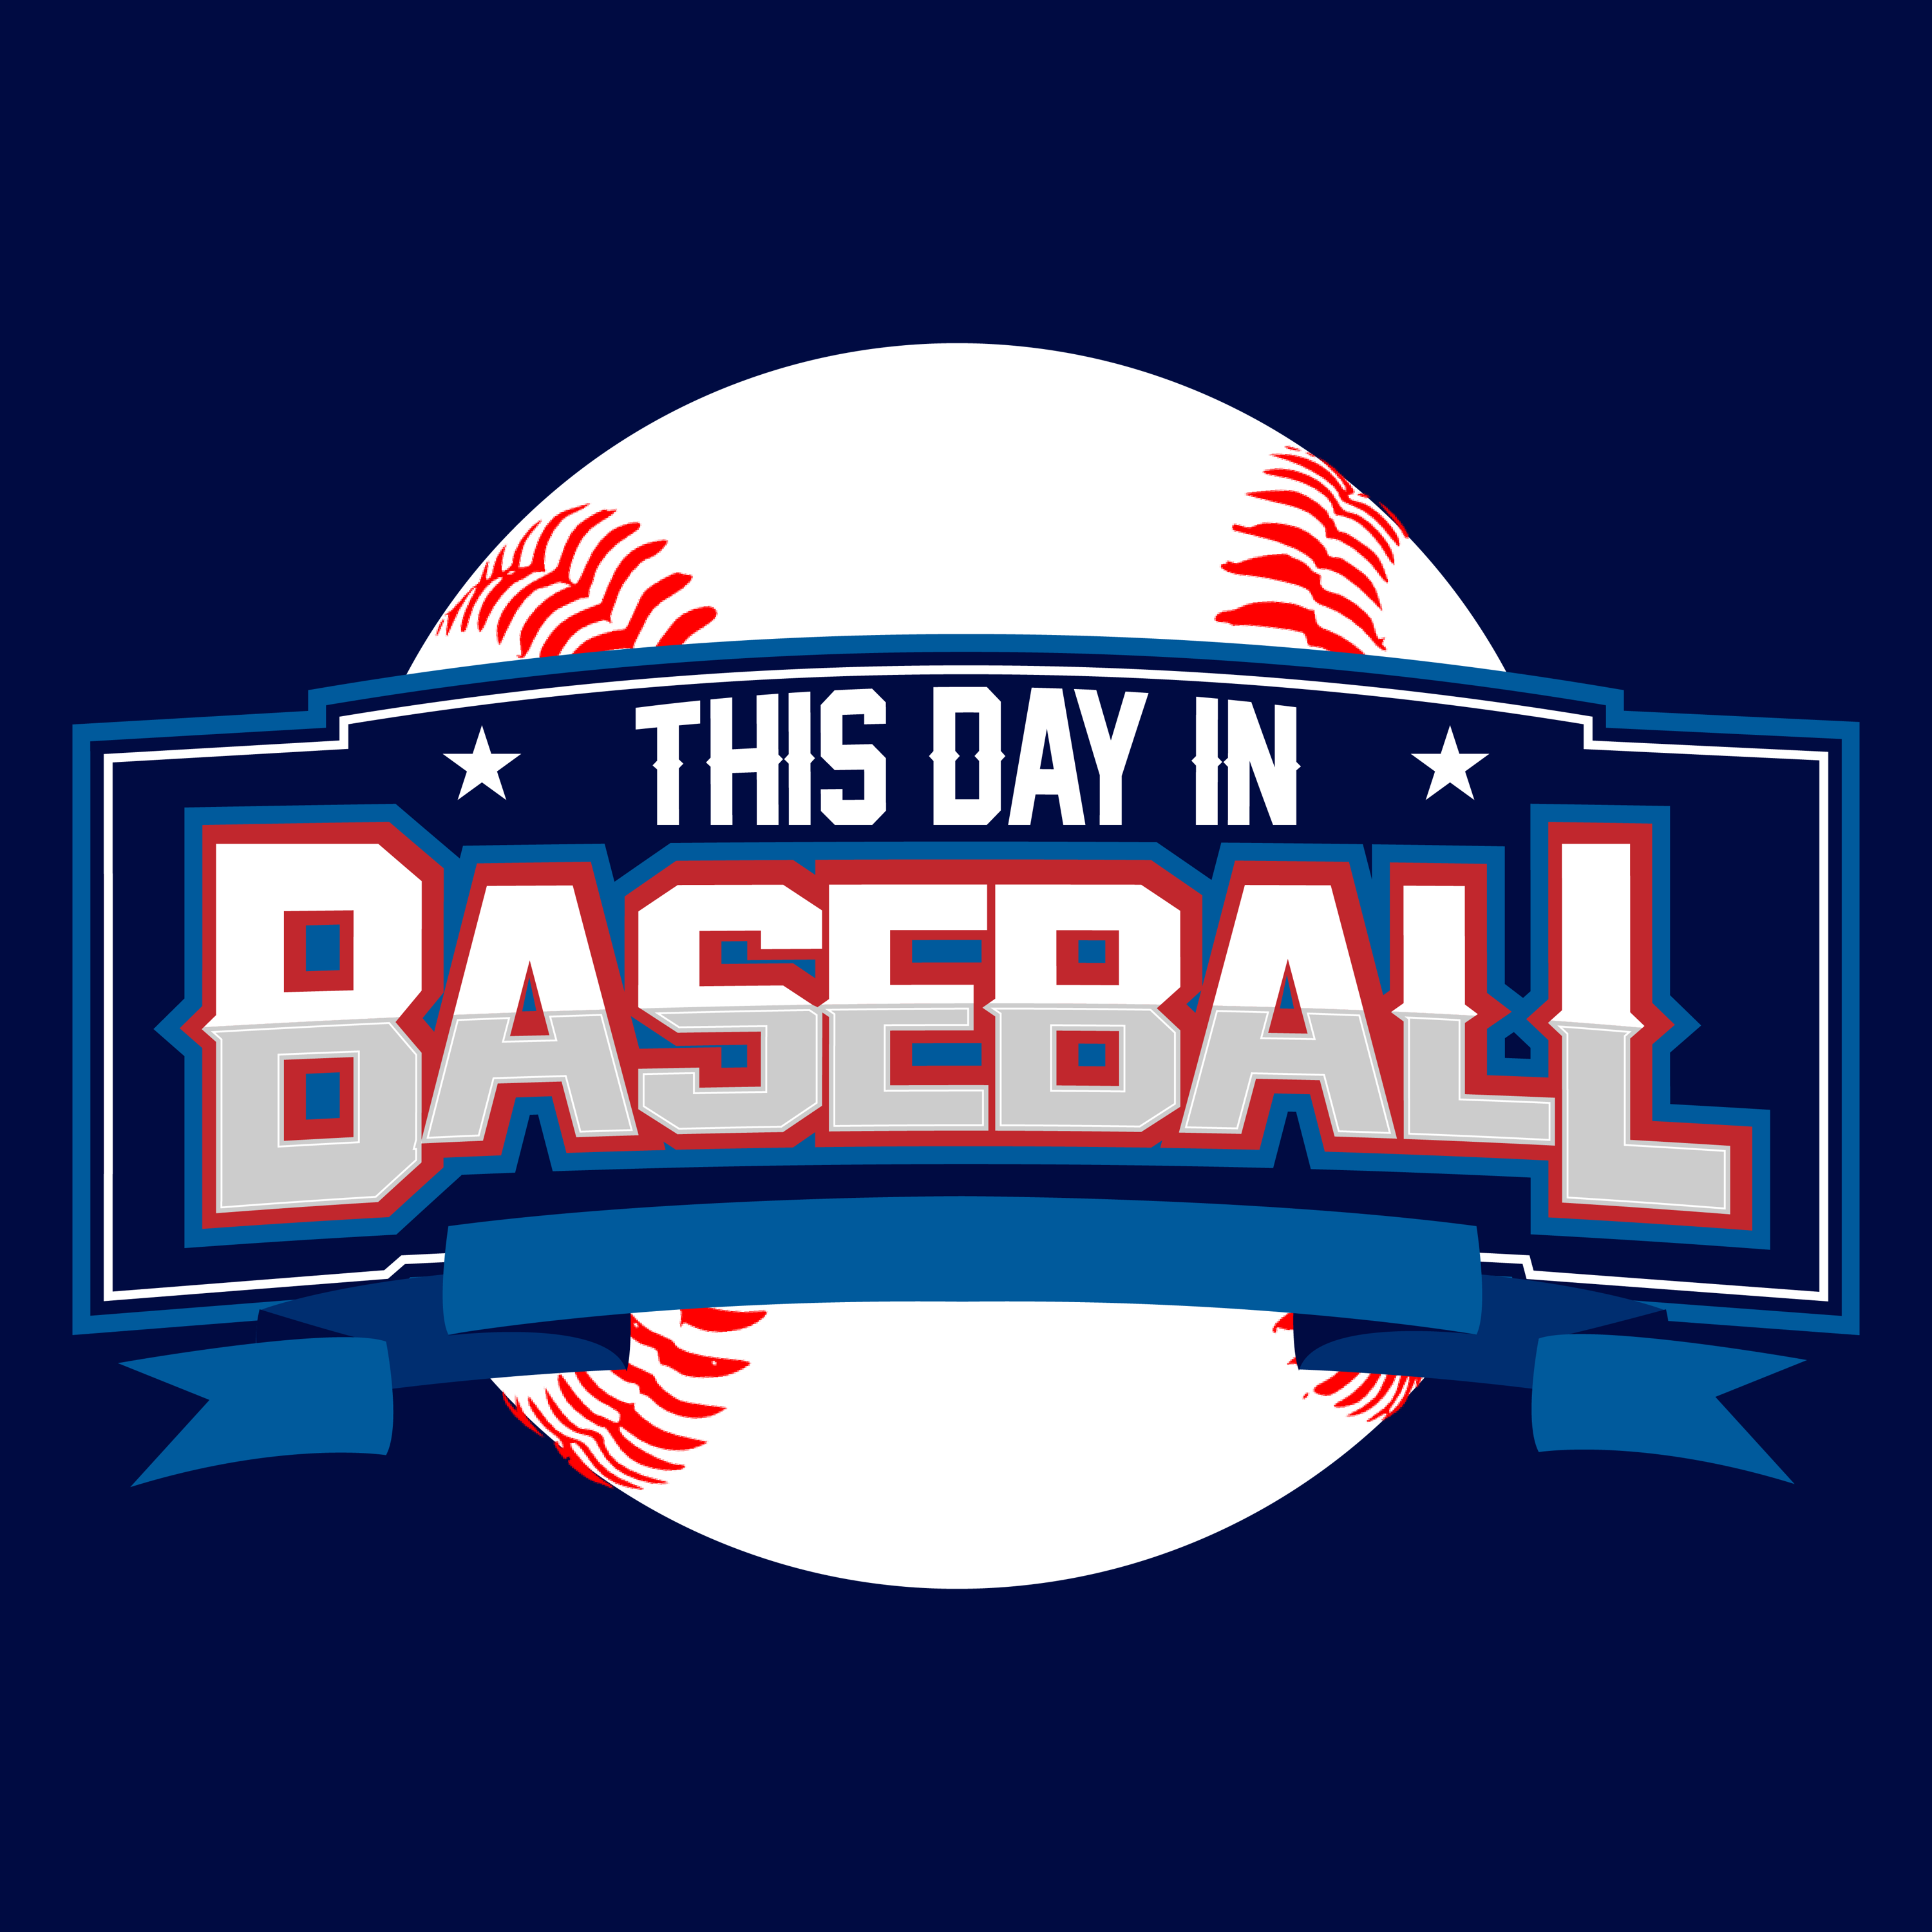 This Day in Baseball - The Daily Rewind show art